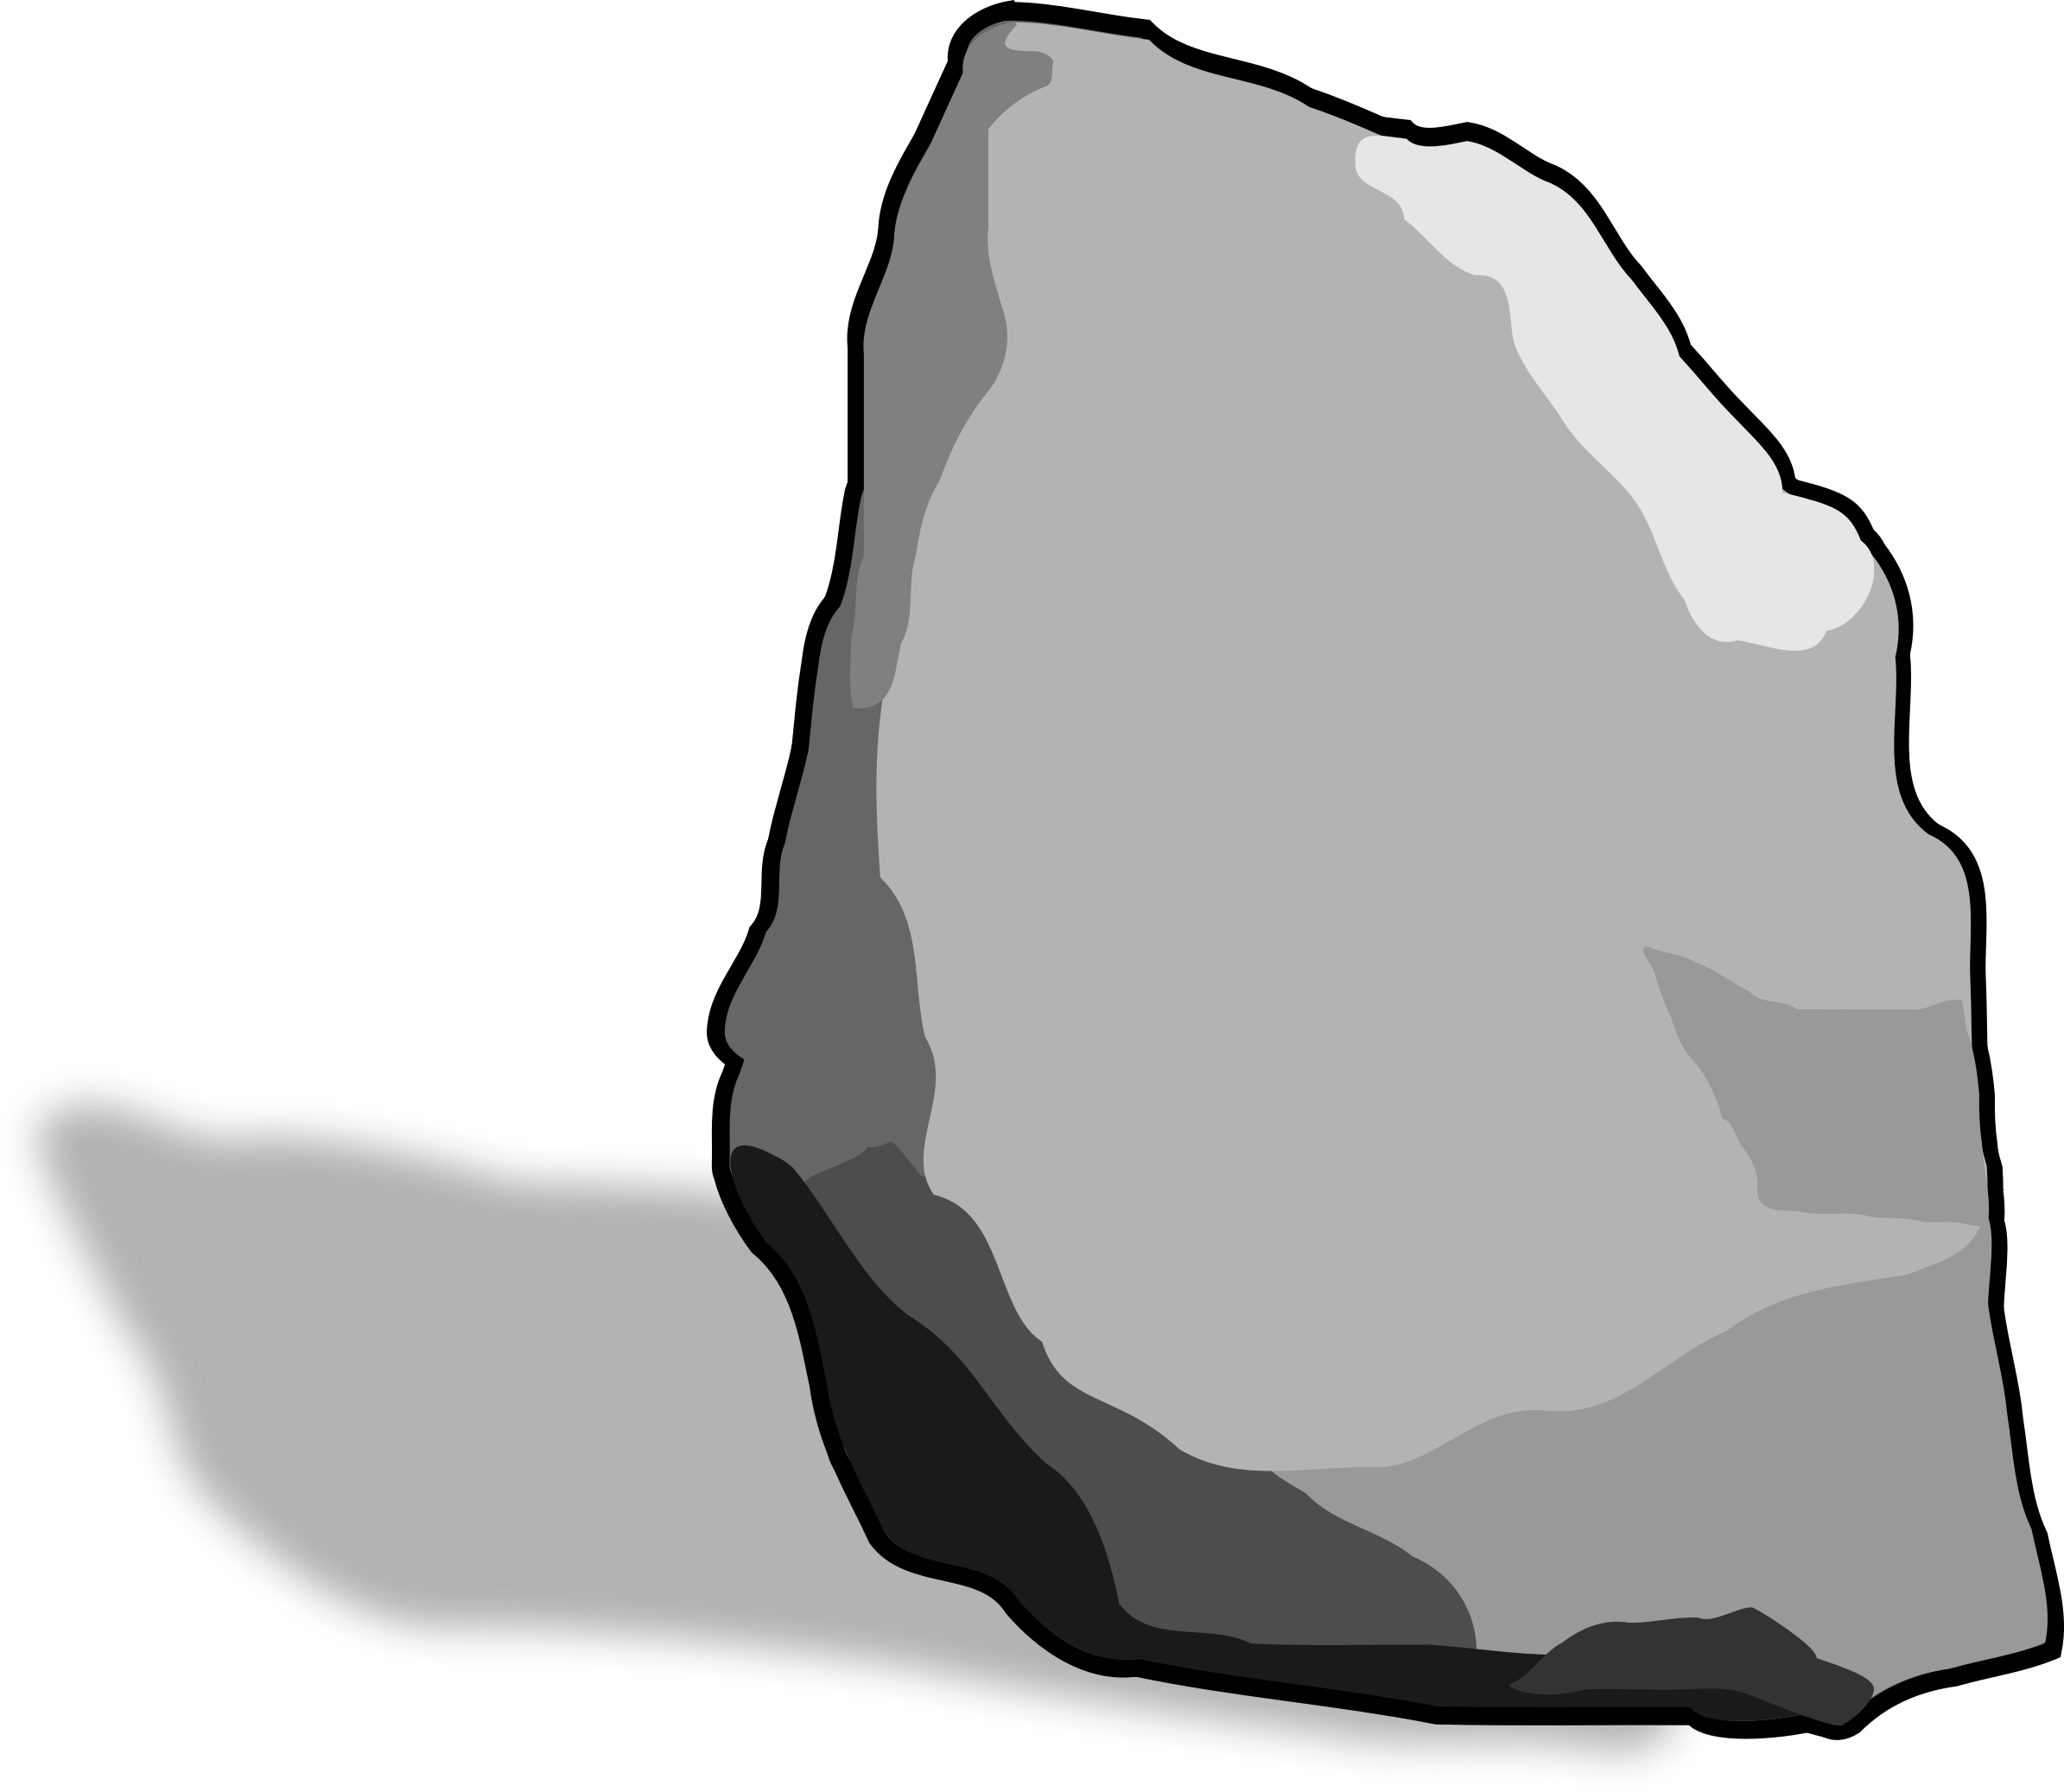 Stone clipart large rock. Sea pencil and in